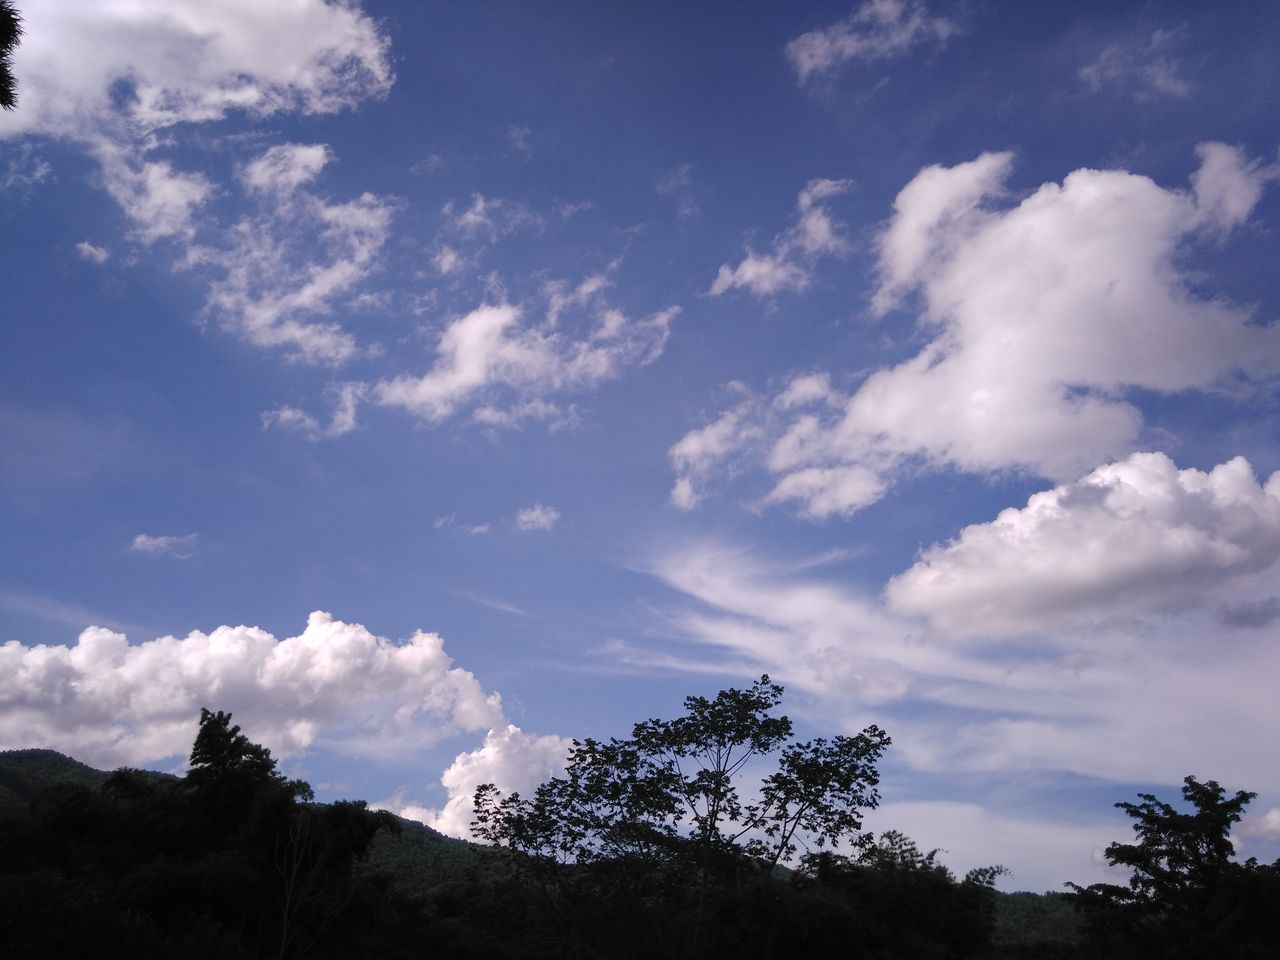 sky, nature, low angle view, beauty in nature, cloud - sky, tree, tranquility, scenics, no people, outdoors, day